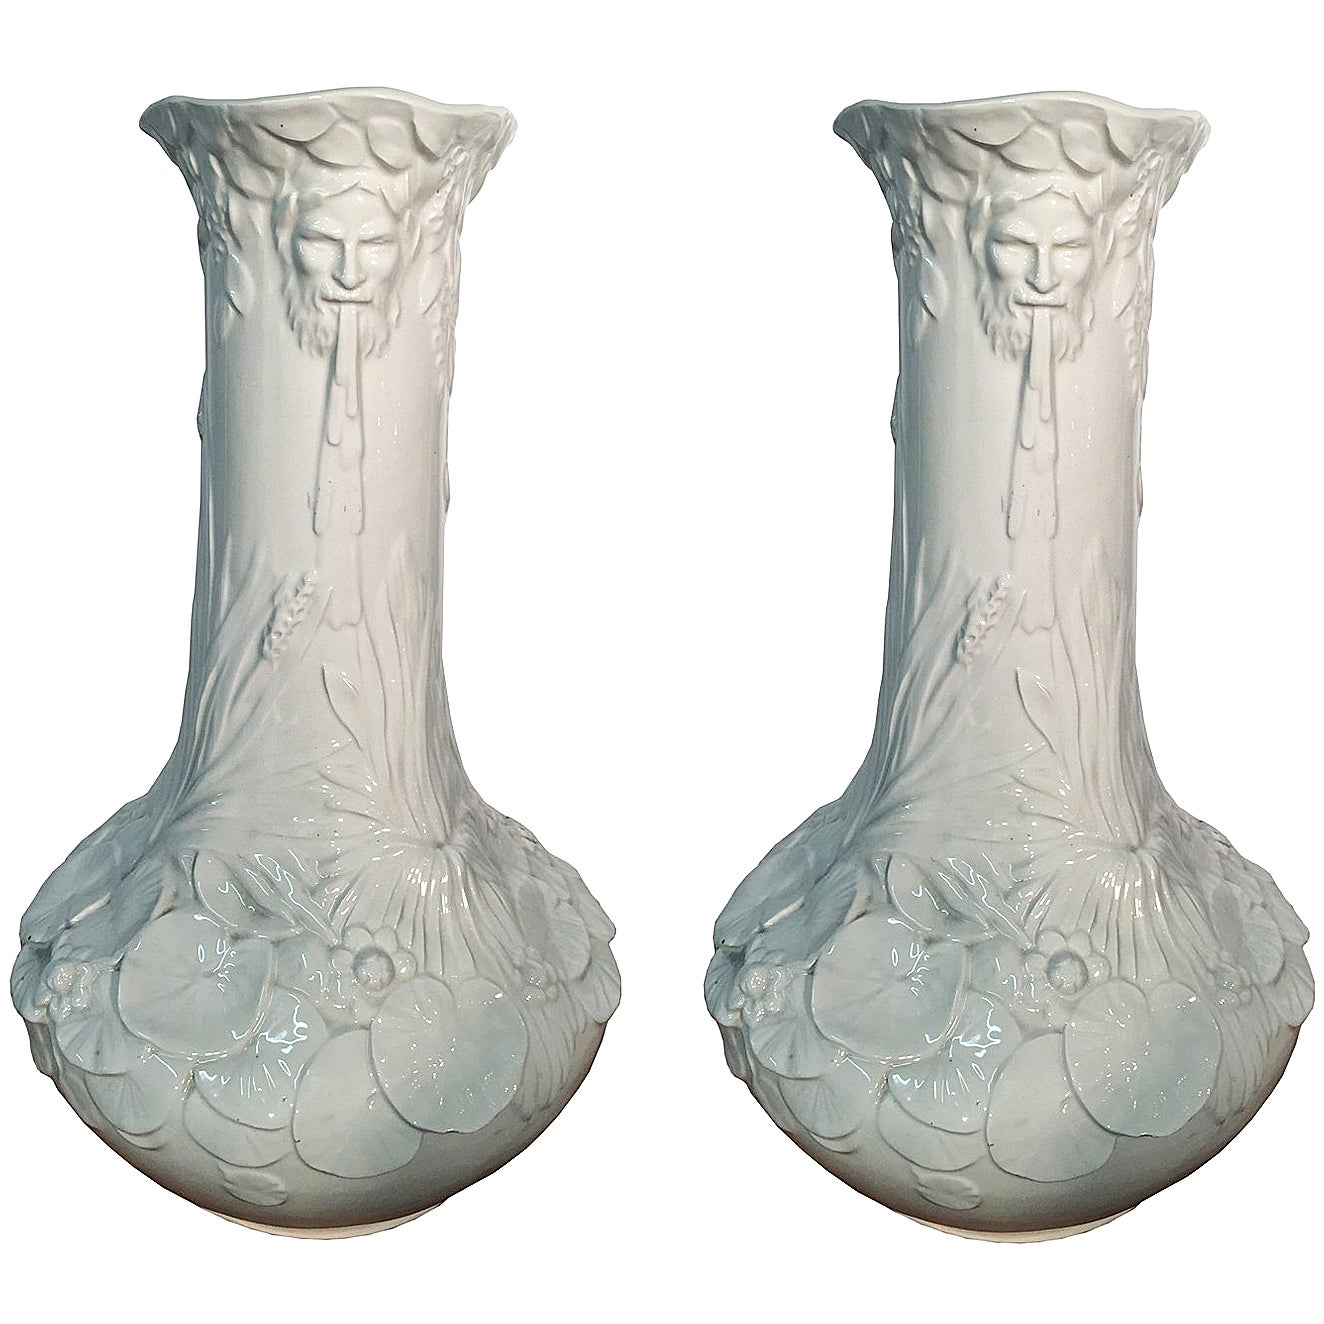 Pair of High Art Nouveau Ceramic Vases, Italy, circa 1950